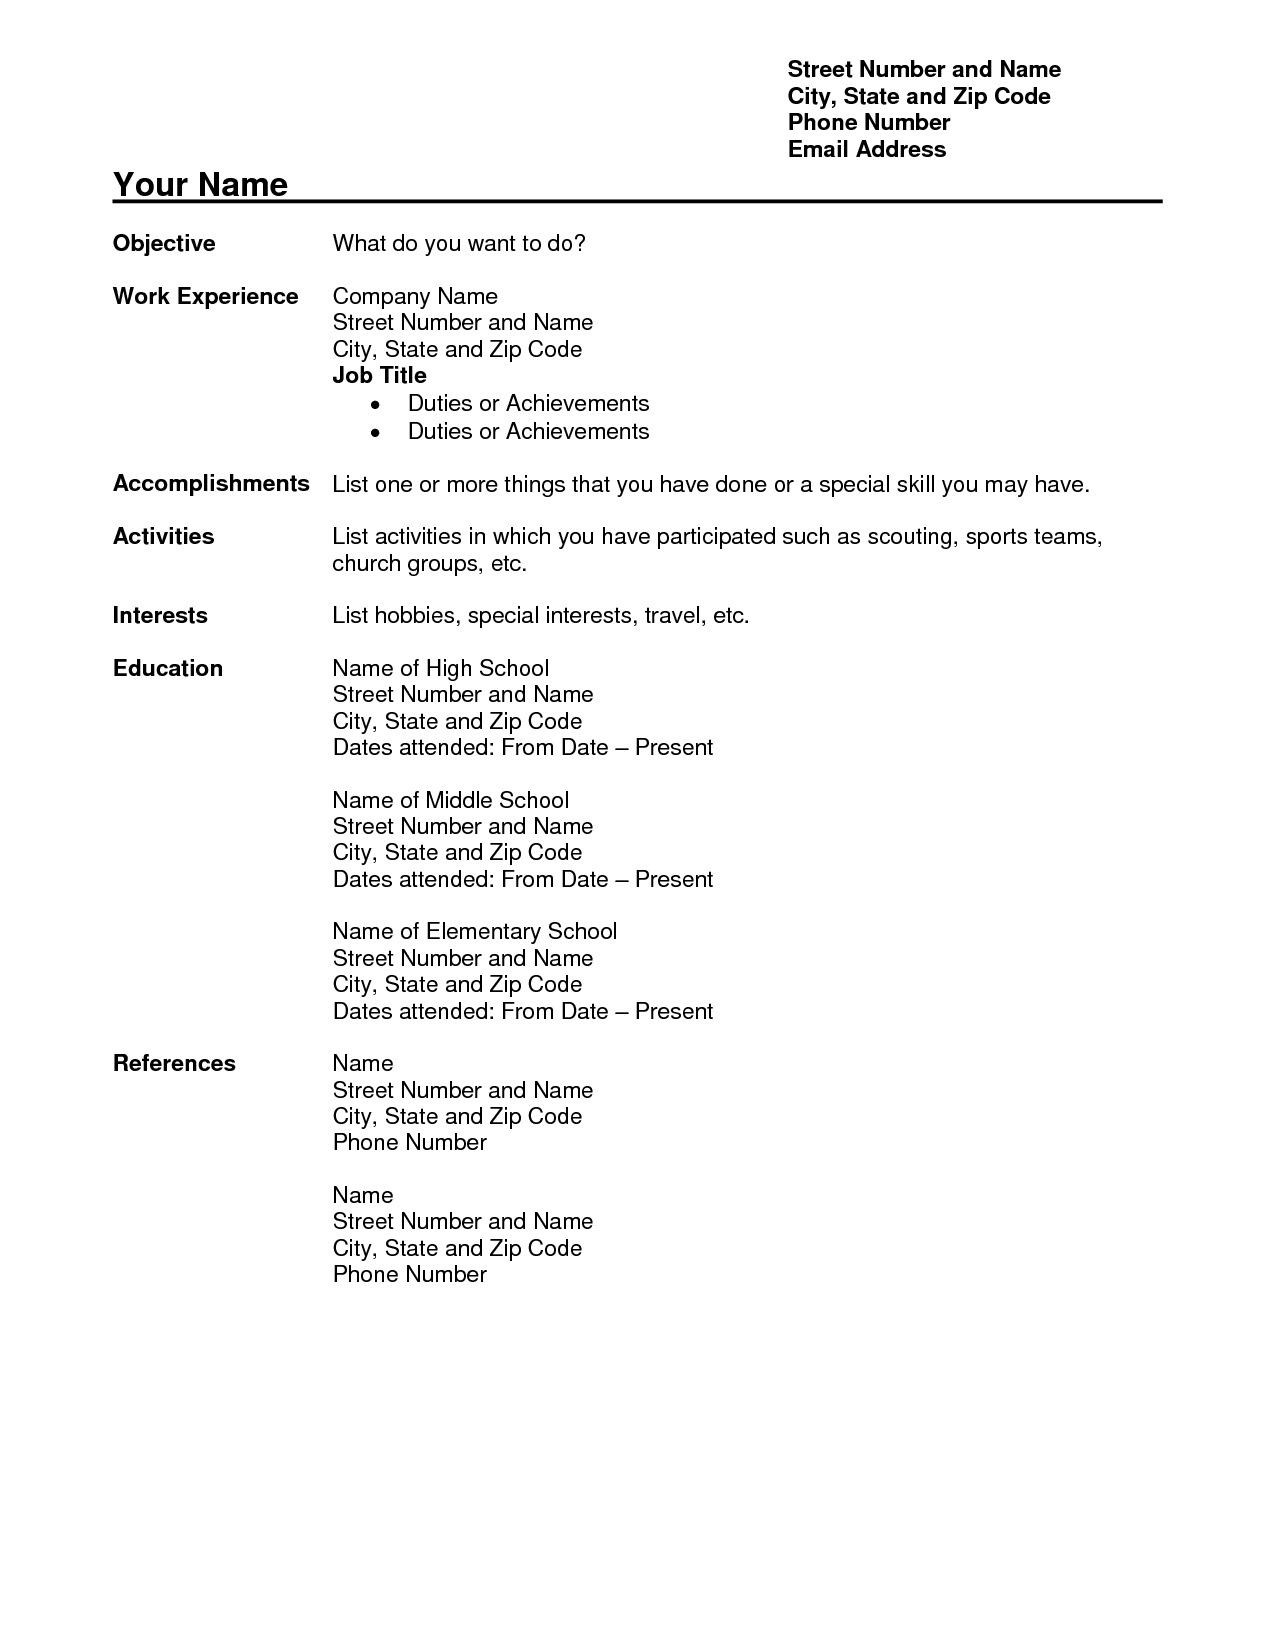 Free Teacher Resume Templates Download Free Teacher Resume Templates  Download, Free Teacher Resume Templates Microsoft Word, Teaching Resume  Template Word, ...